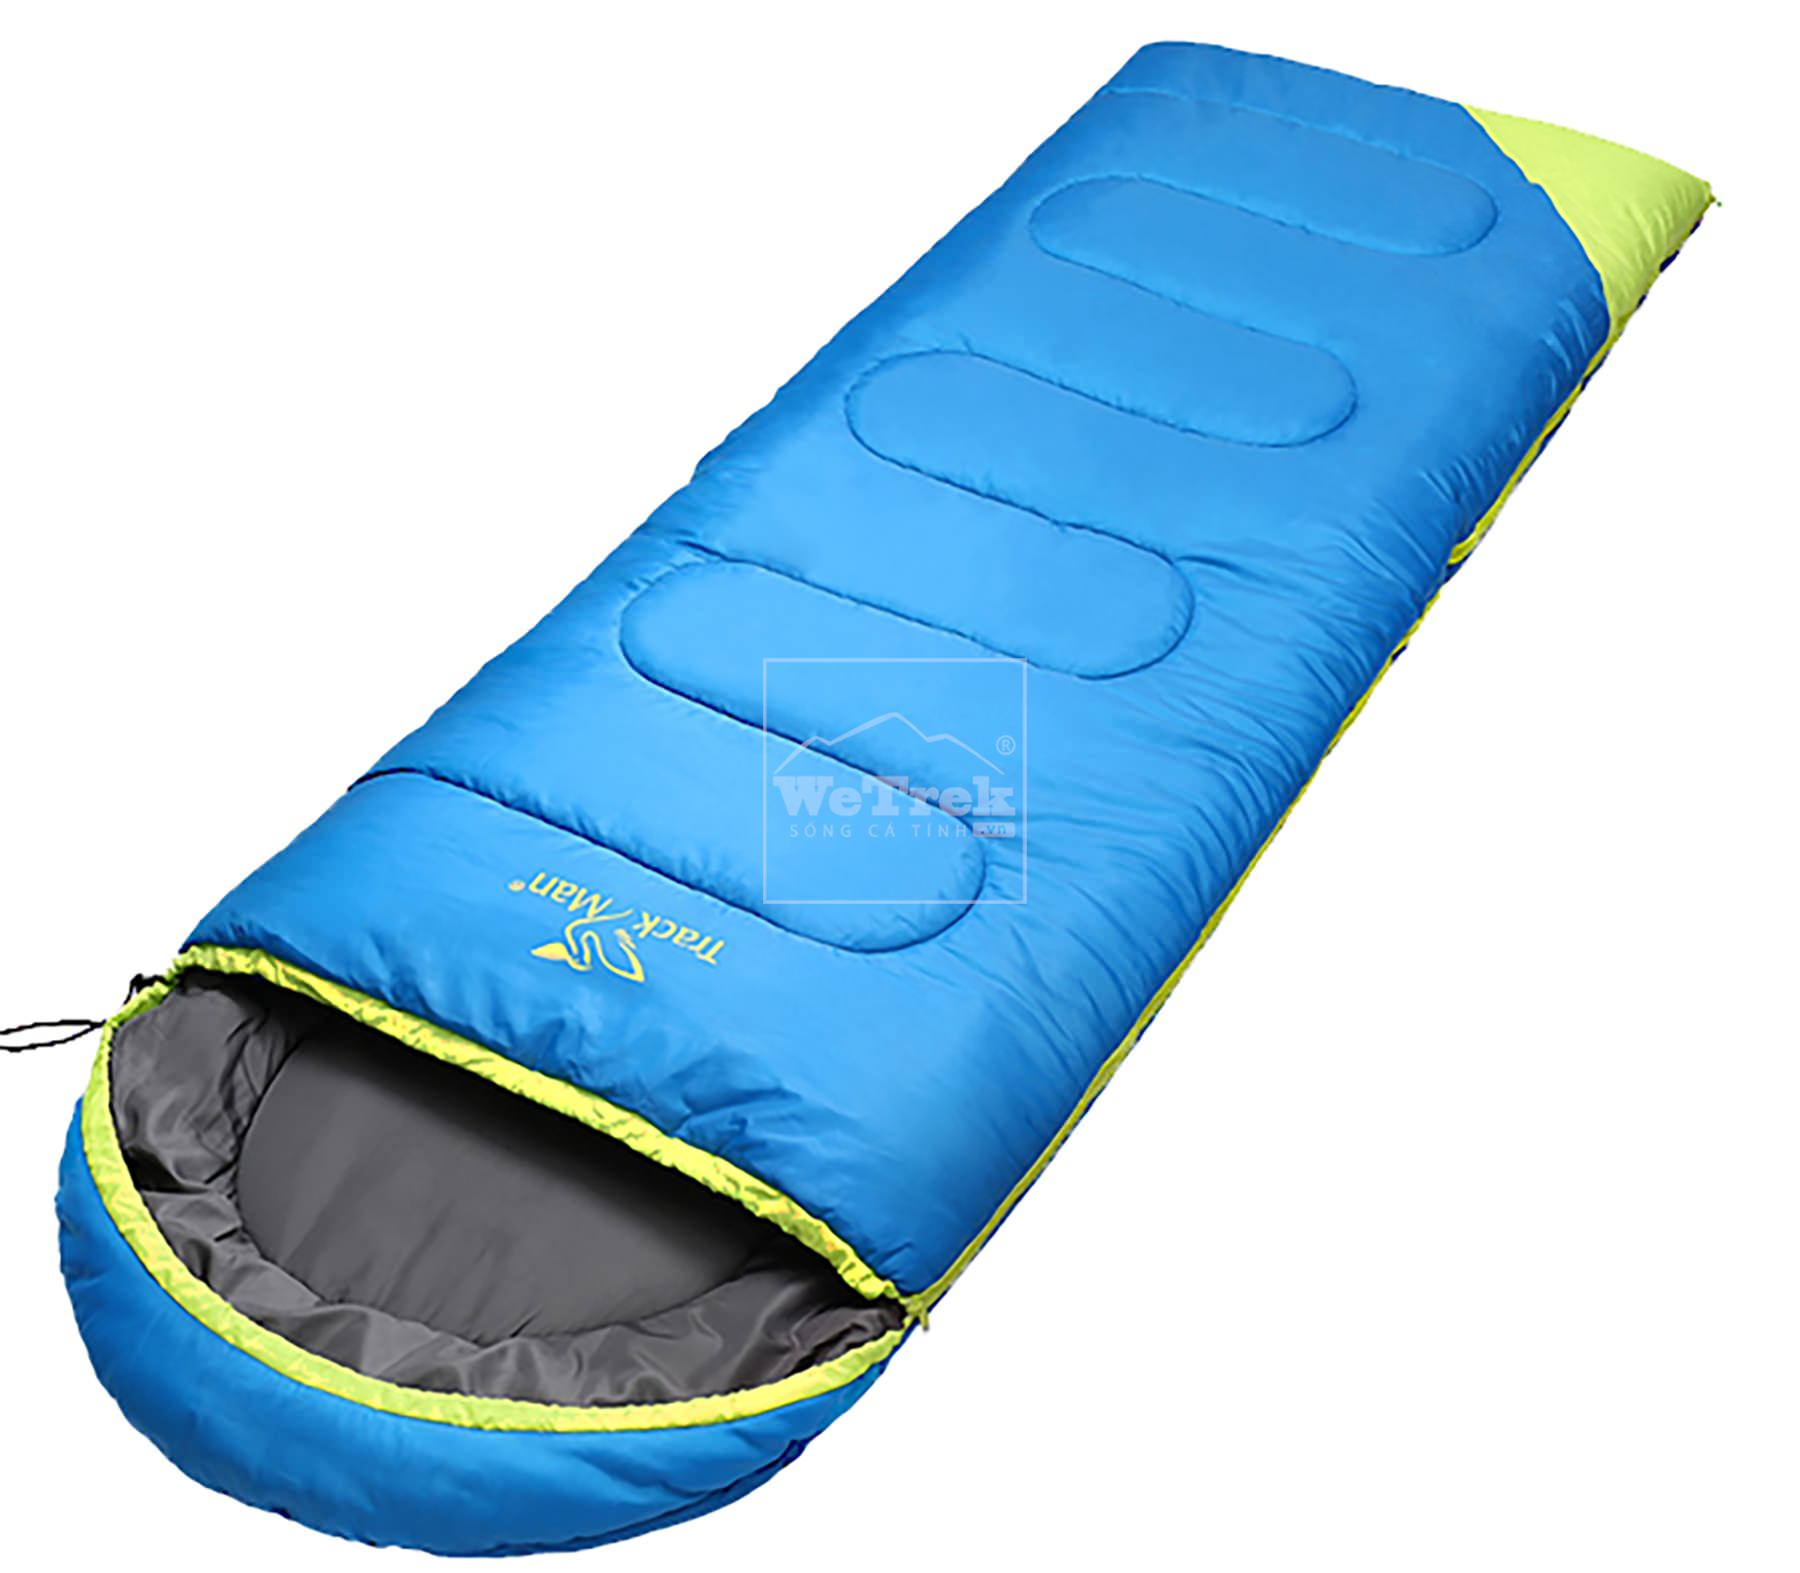 Túi ngủ Track Man Sleeping Bag TM3211 150g - 7898